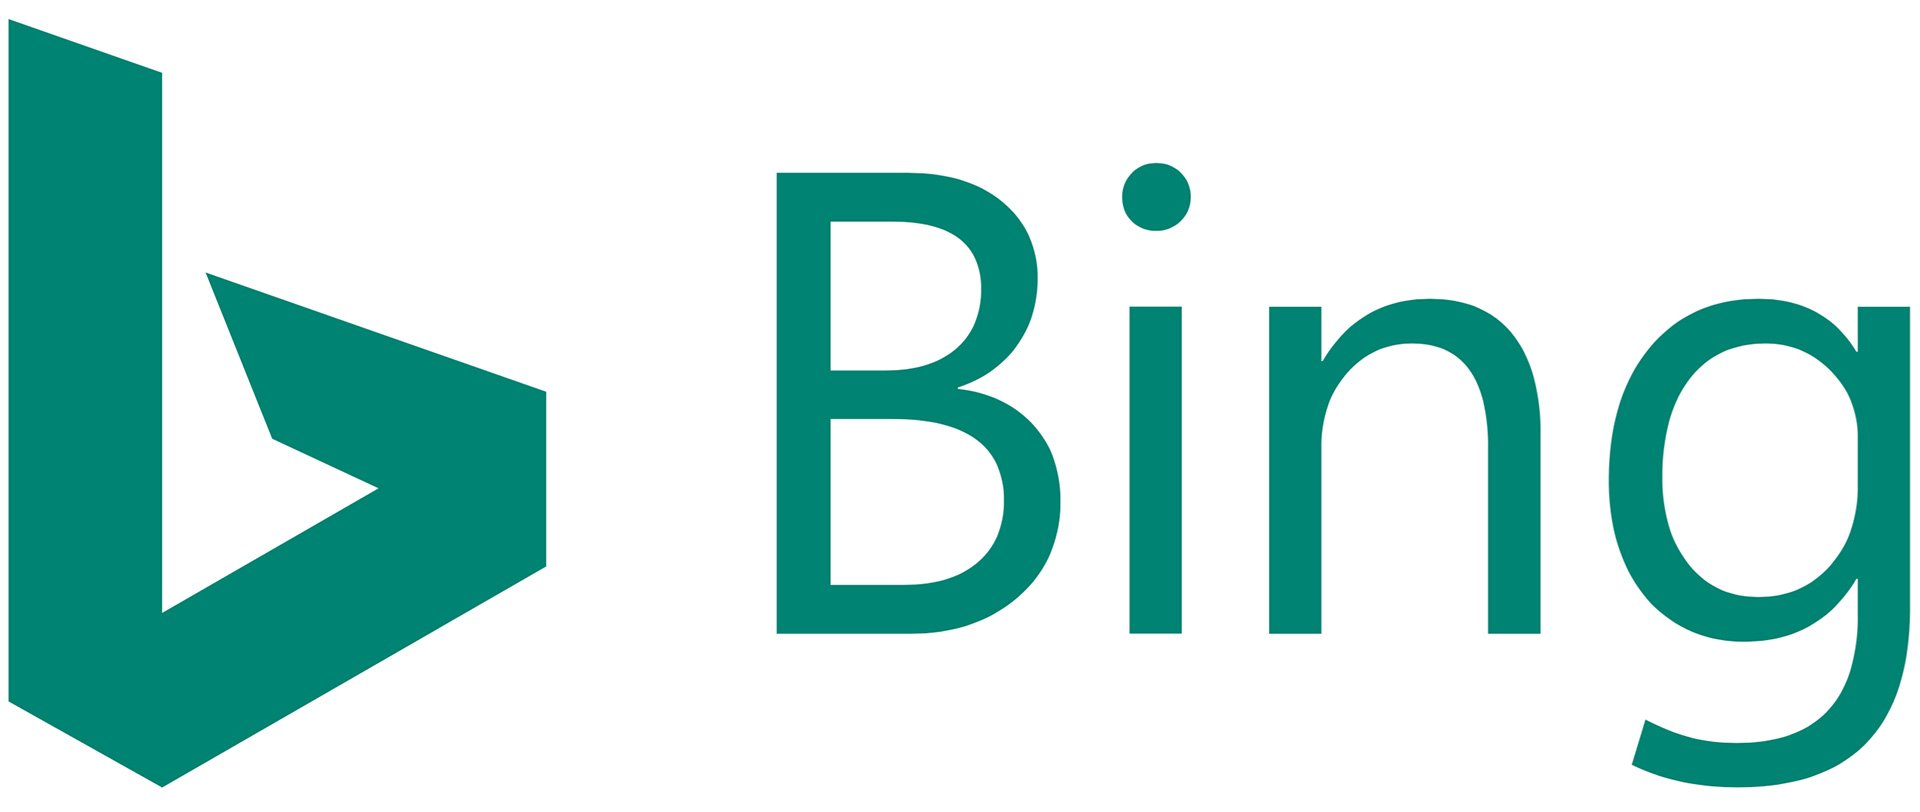 In our latest blog post we solve the unanswered question of 'who actually uses Bing?' https://t.co/eE3fNosSe5 https://t.co/YyhBRunSTc